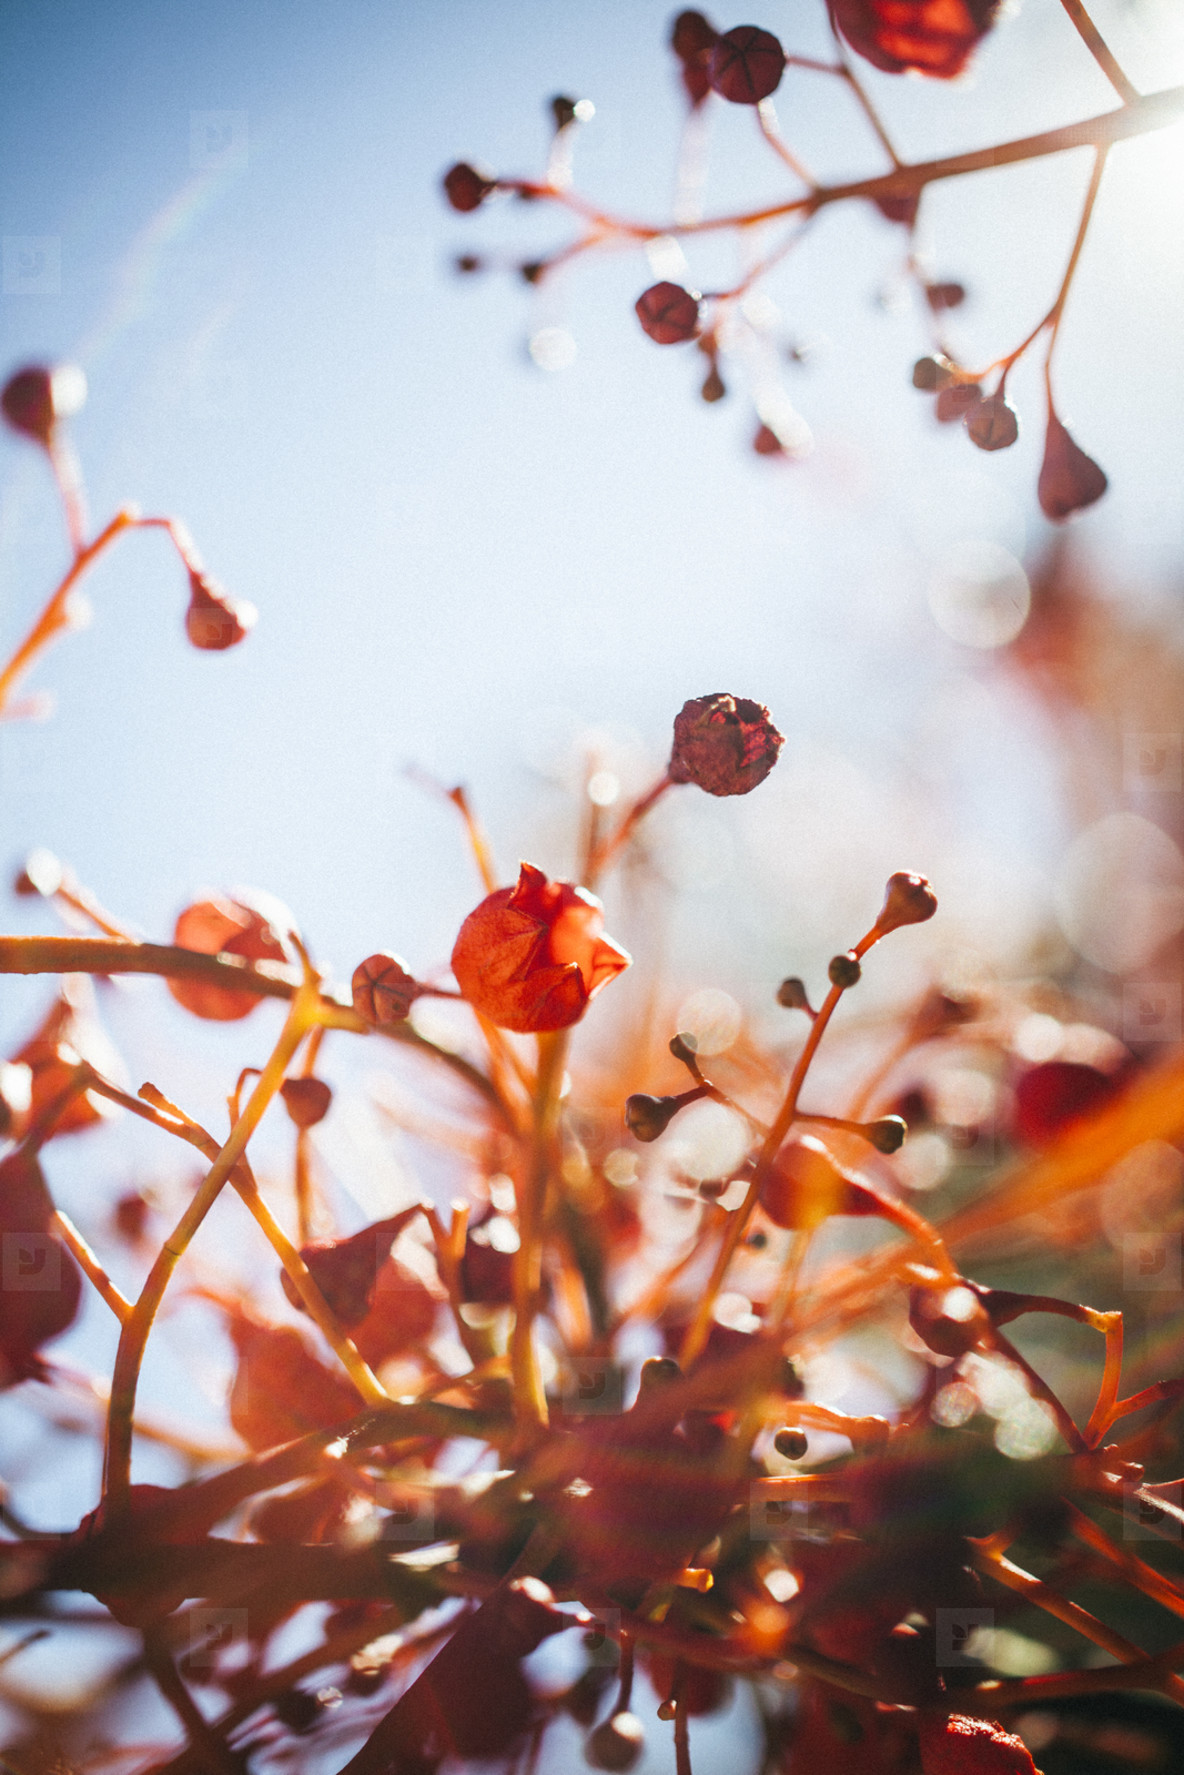 Close up of red plant leaves and